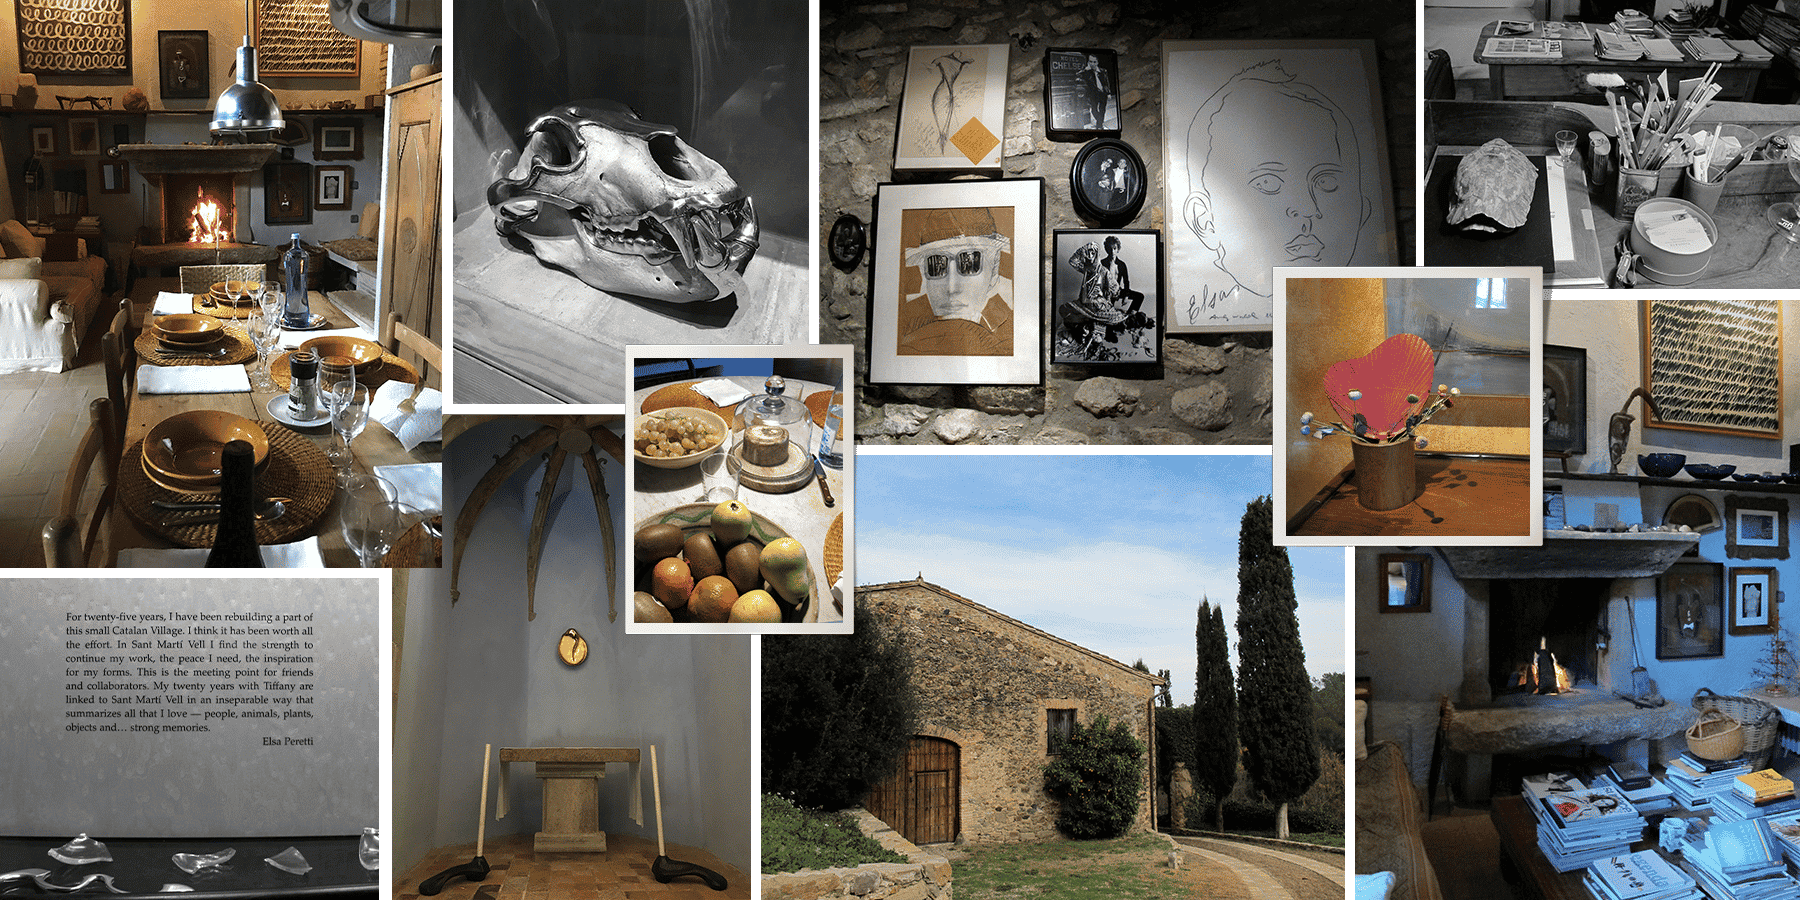 Collage of photos from Elsa Peretti's home n Spain